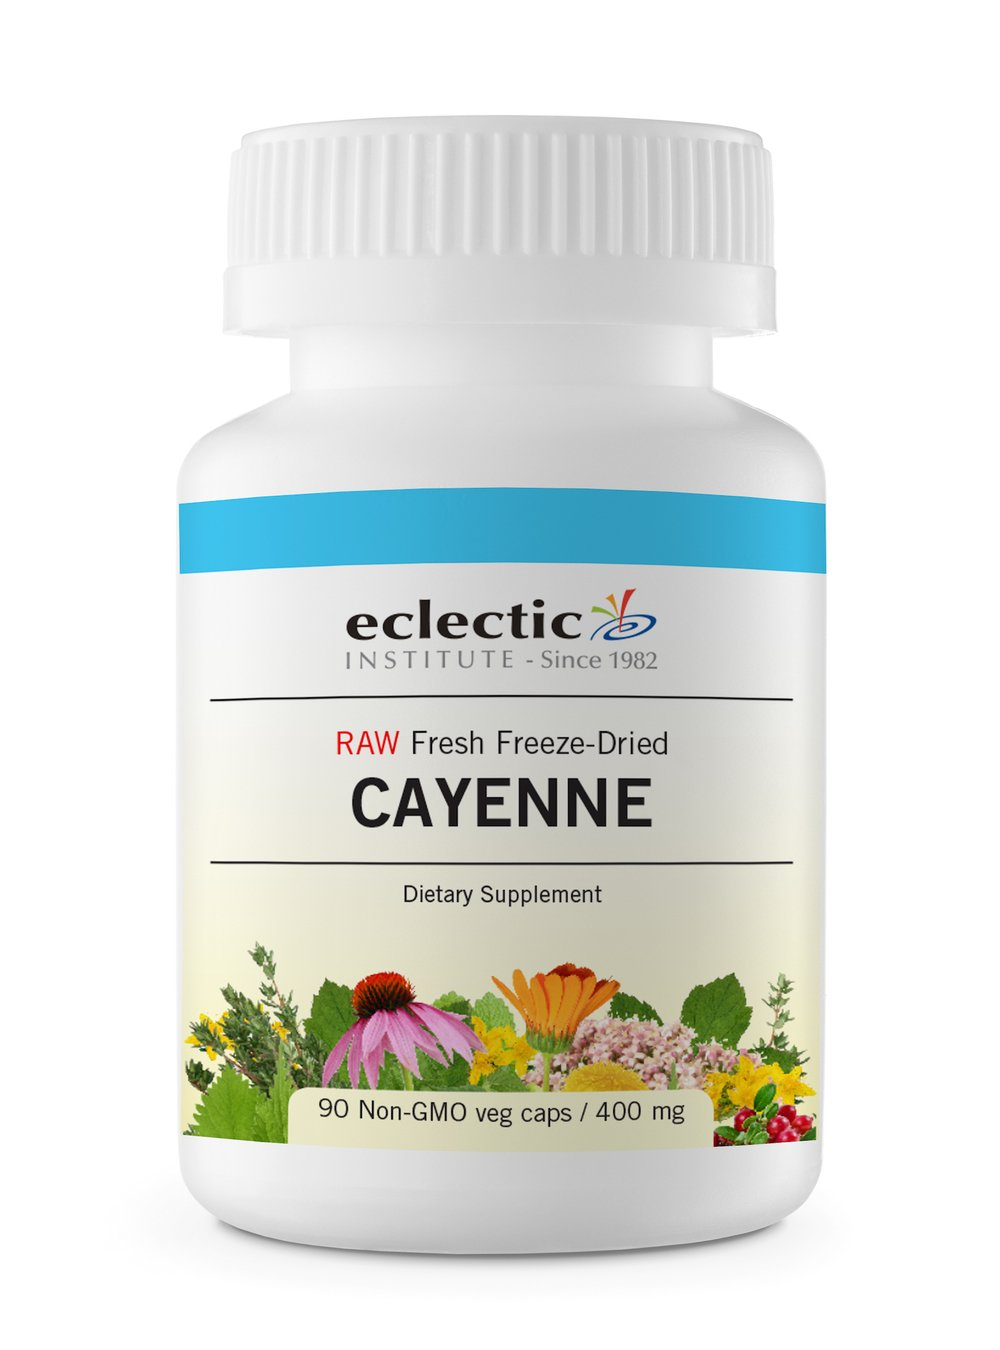 Eclectic Cayenne Cog FDV, 90 Count